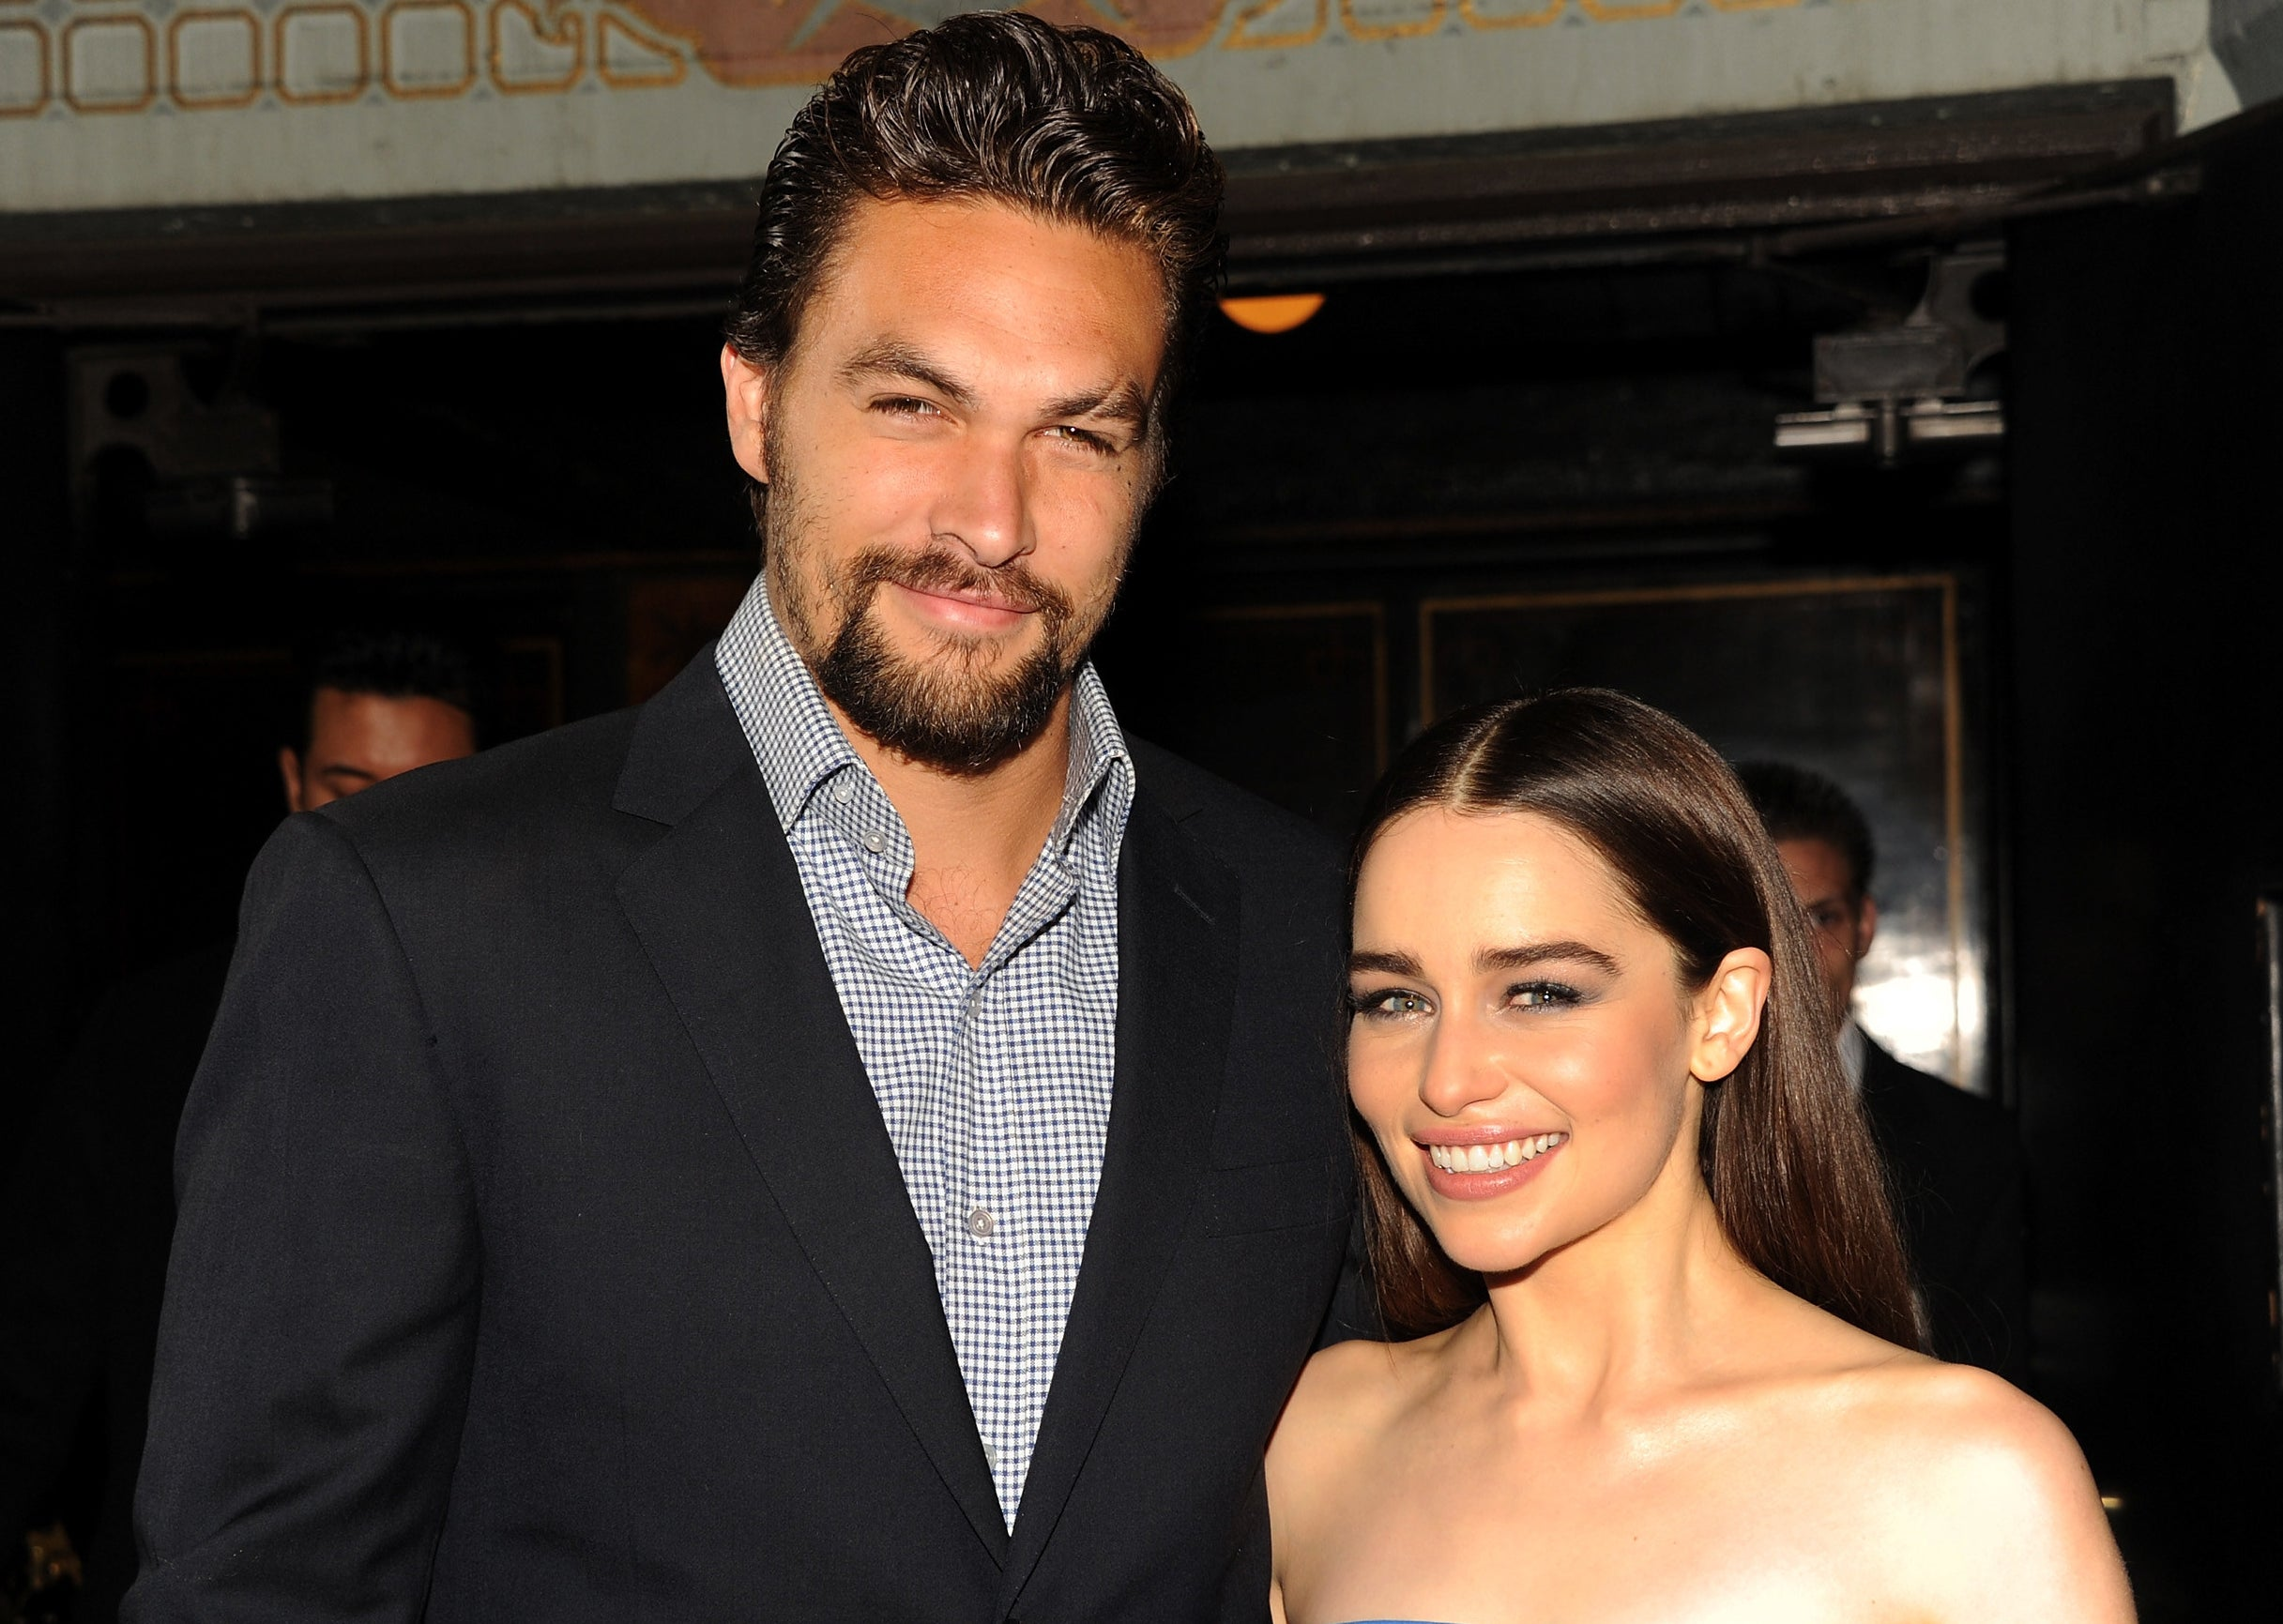 Jason looks formal in a check shirt and blazer while posing next to Emilia